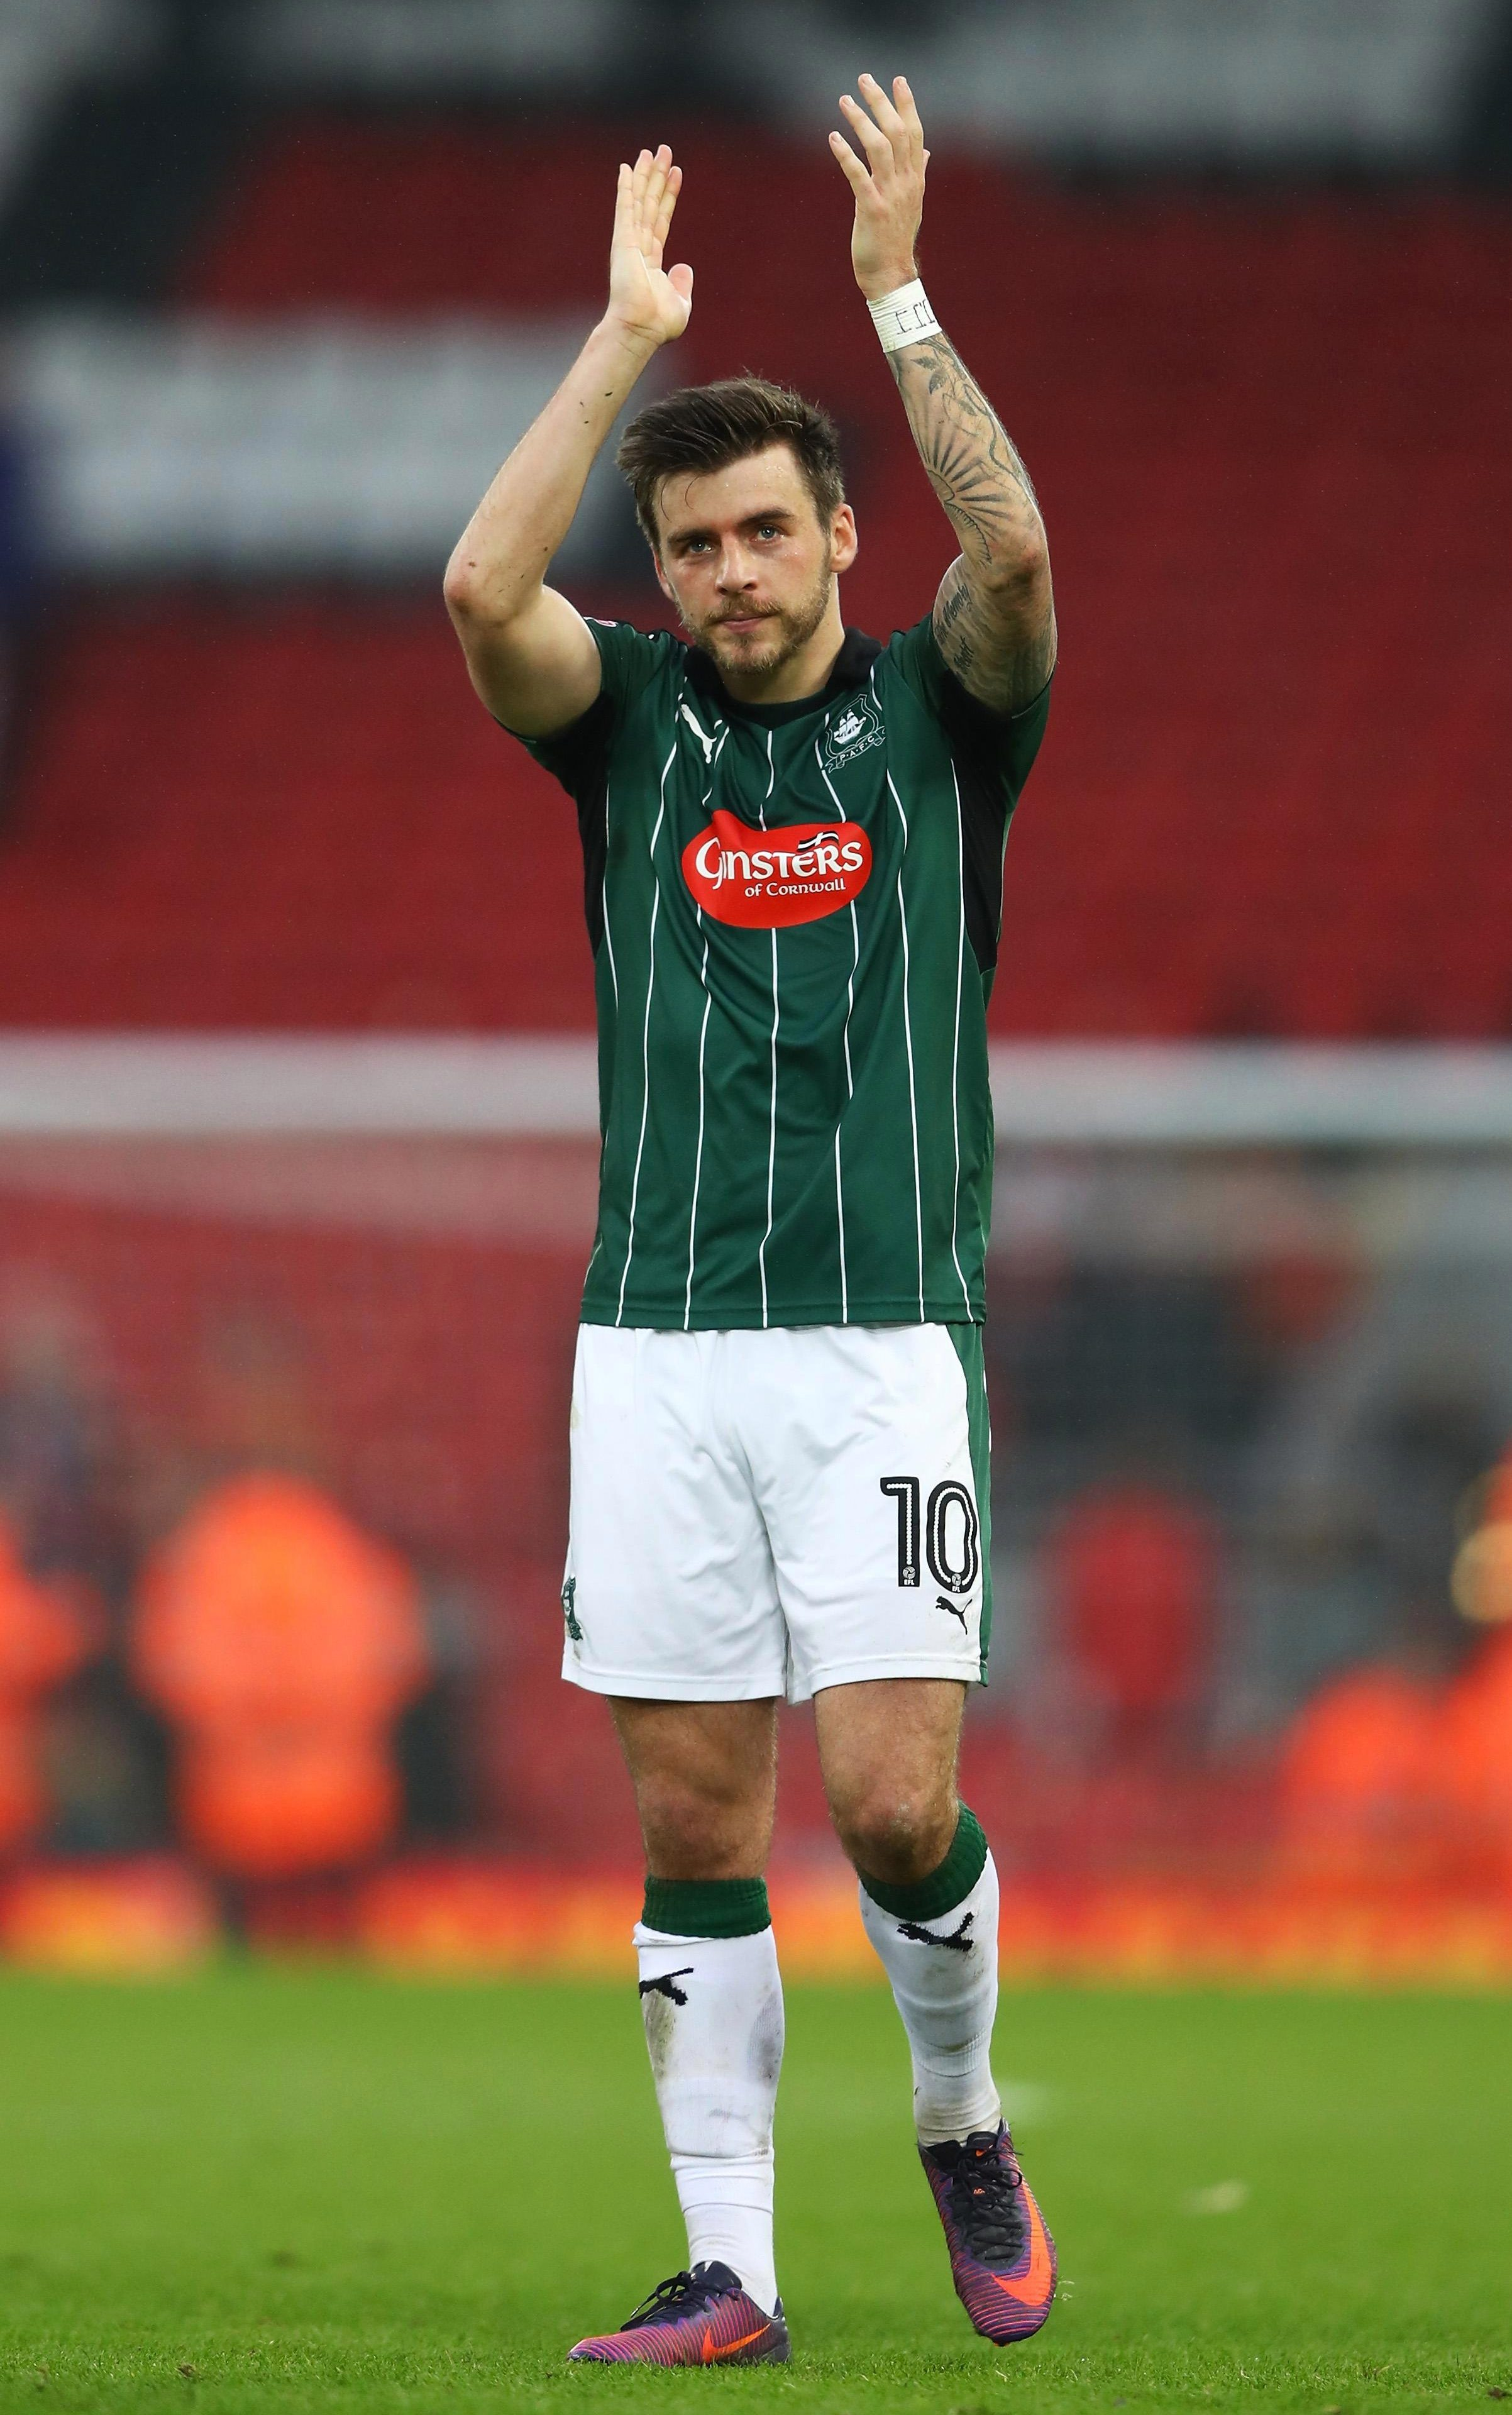 Argyle skipper Graham Carey applauds fans after a famous 0-0 draw at Liverpool